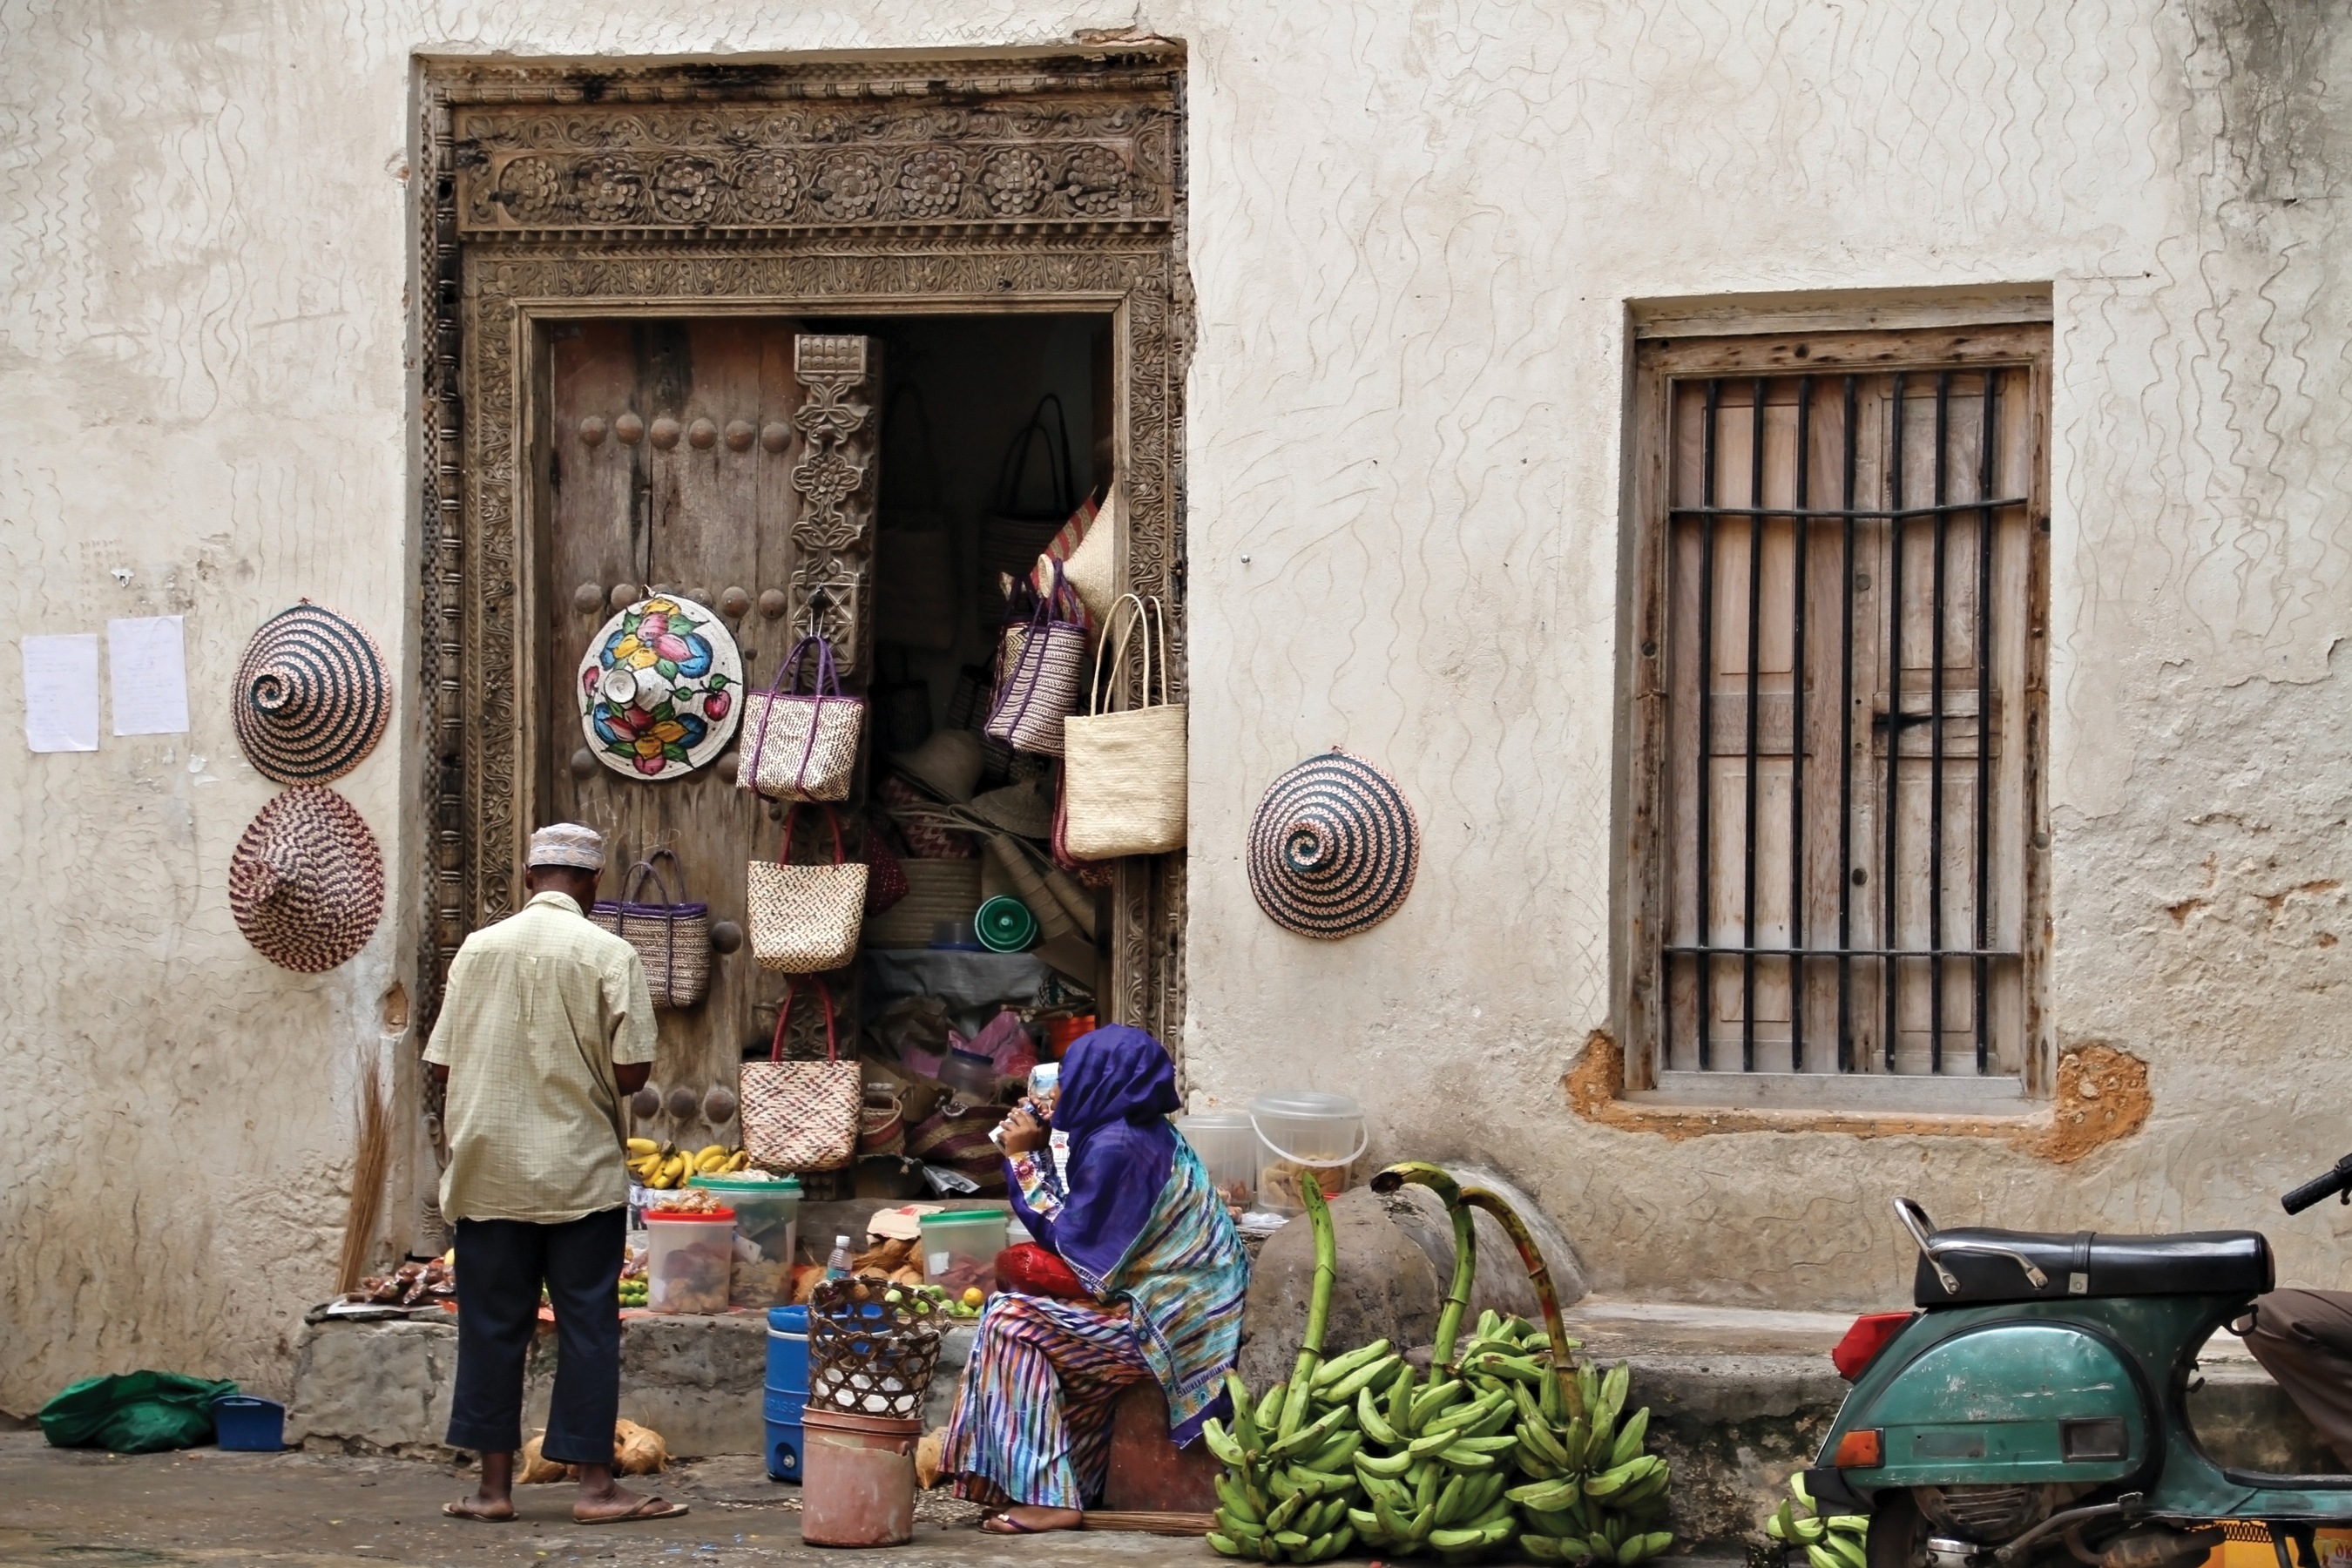 A fruit shop in Stone Town